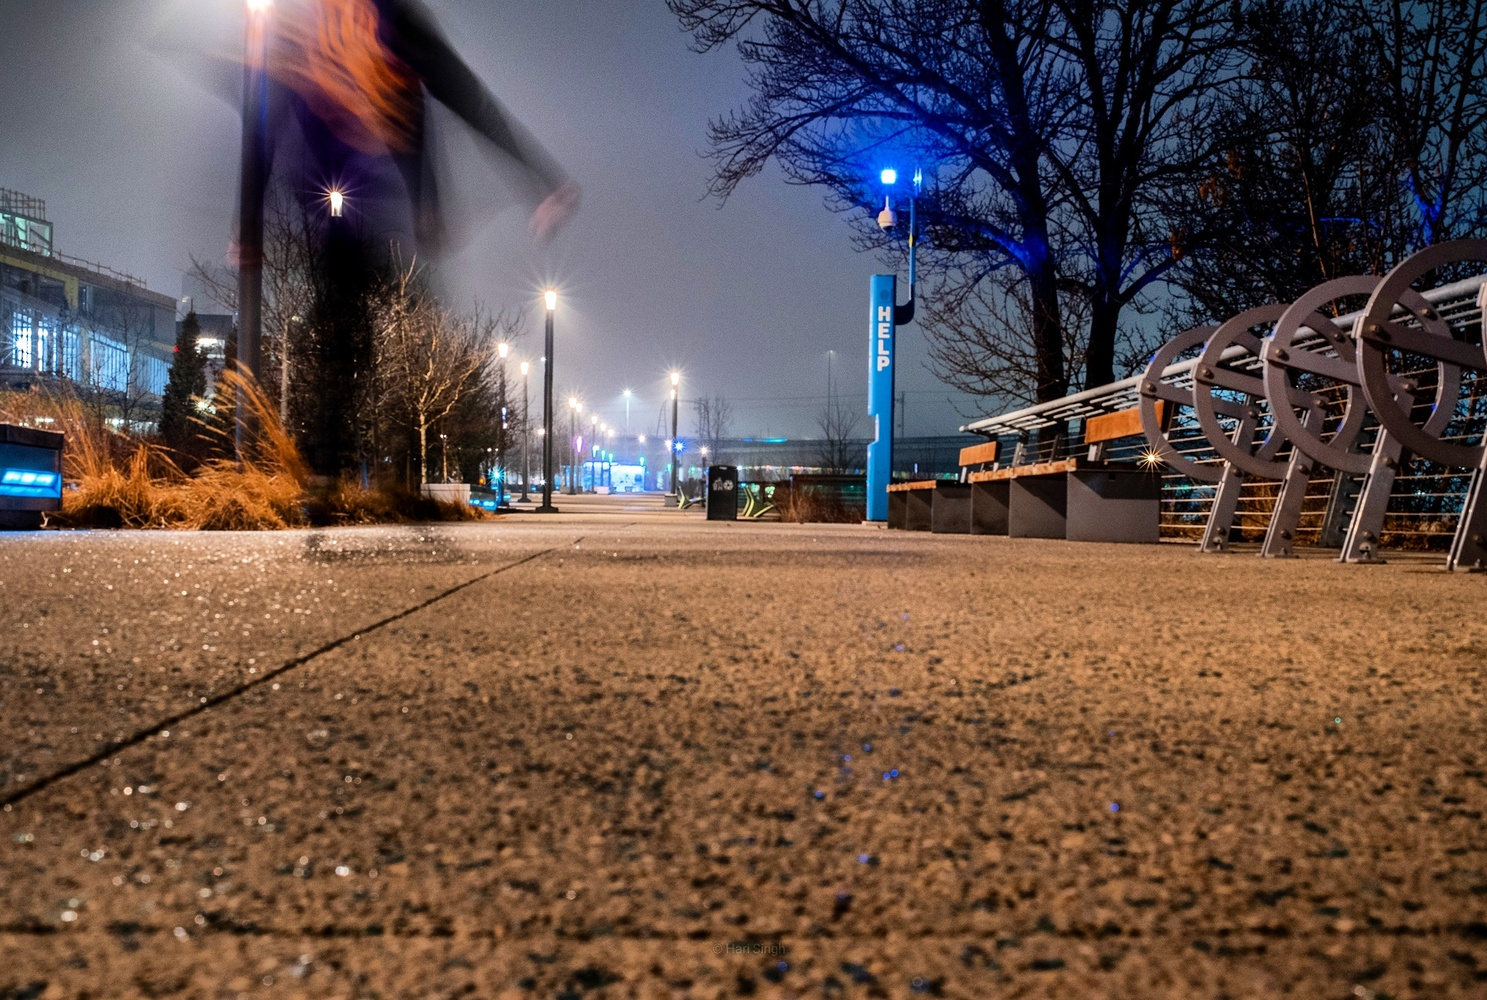 Night Boarder by Viewfinder Journey